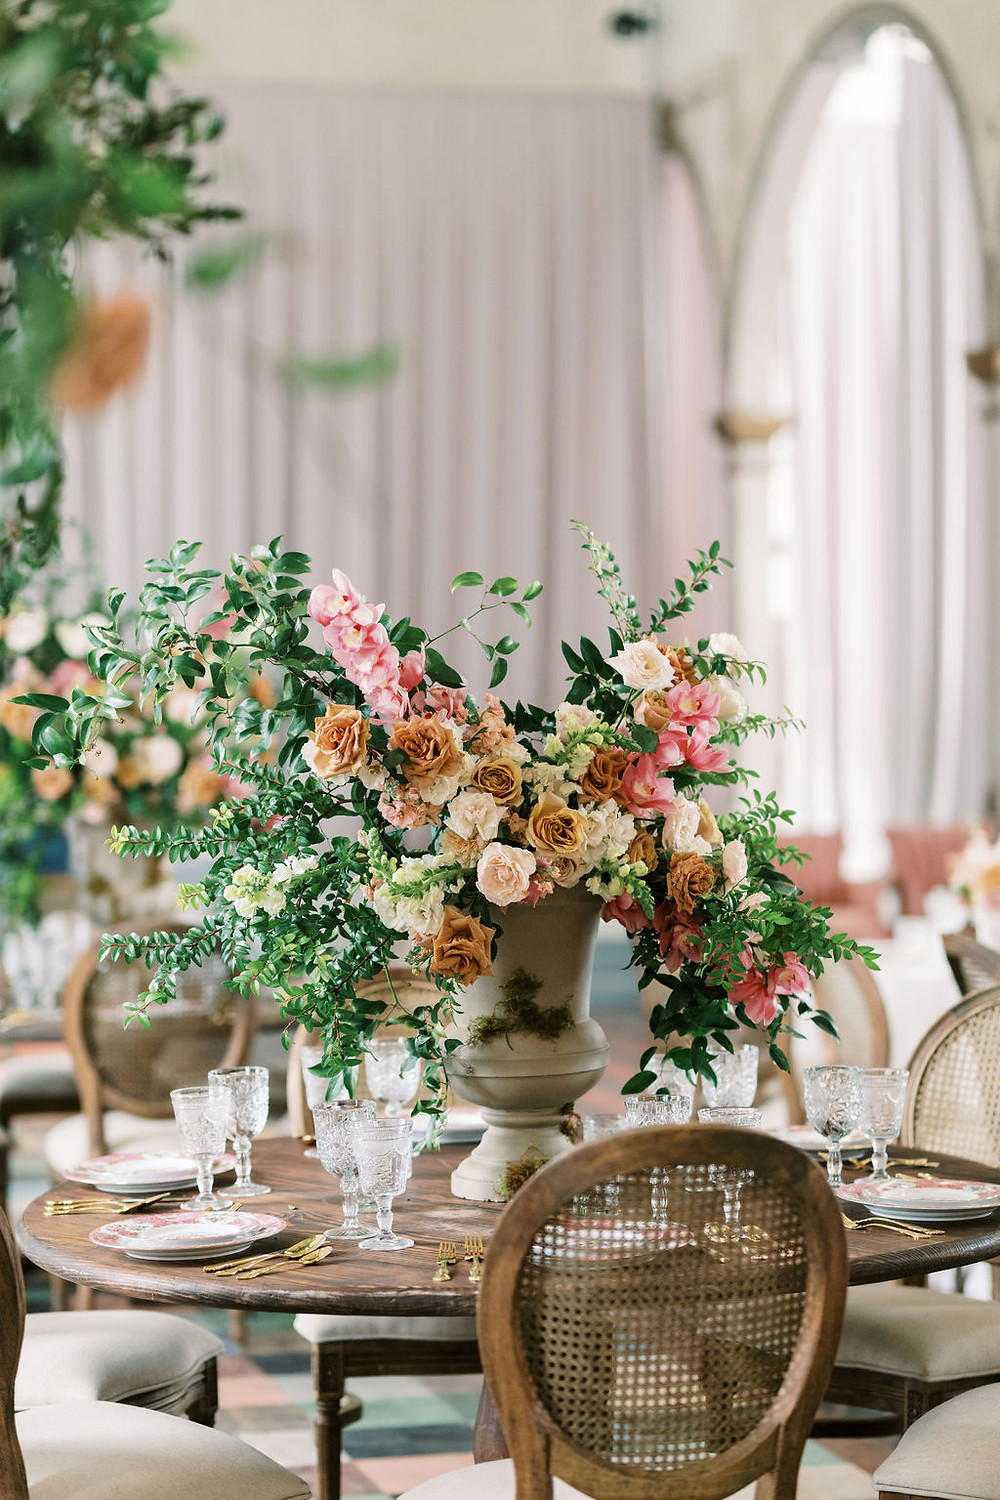 Seated Dinner for Bridgerton Inspired Wedding at the Marigny Opera House in New Orleans with Decor and Vintage Furniture by Lovegood Rentals Featuring Caned Louis Chairs and Mahogany Round Tables and Overgrown Florals